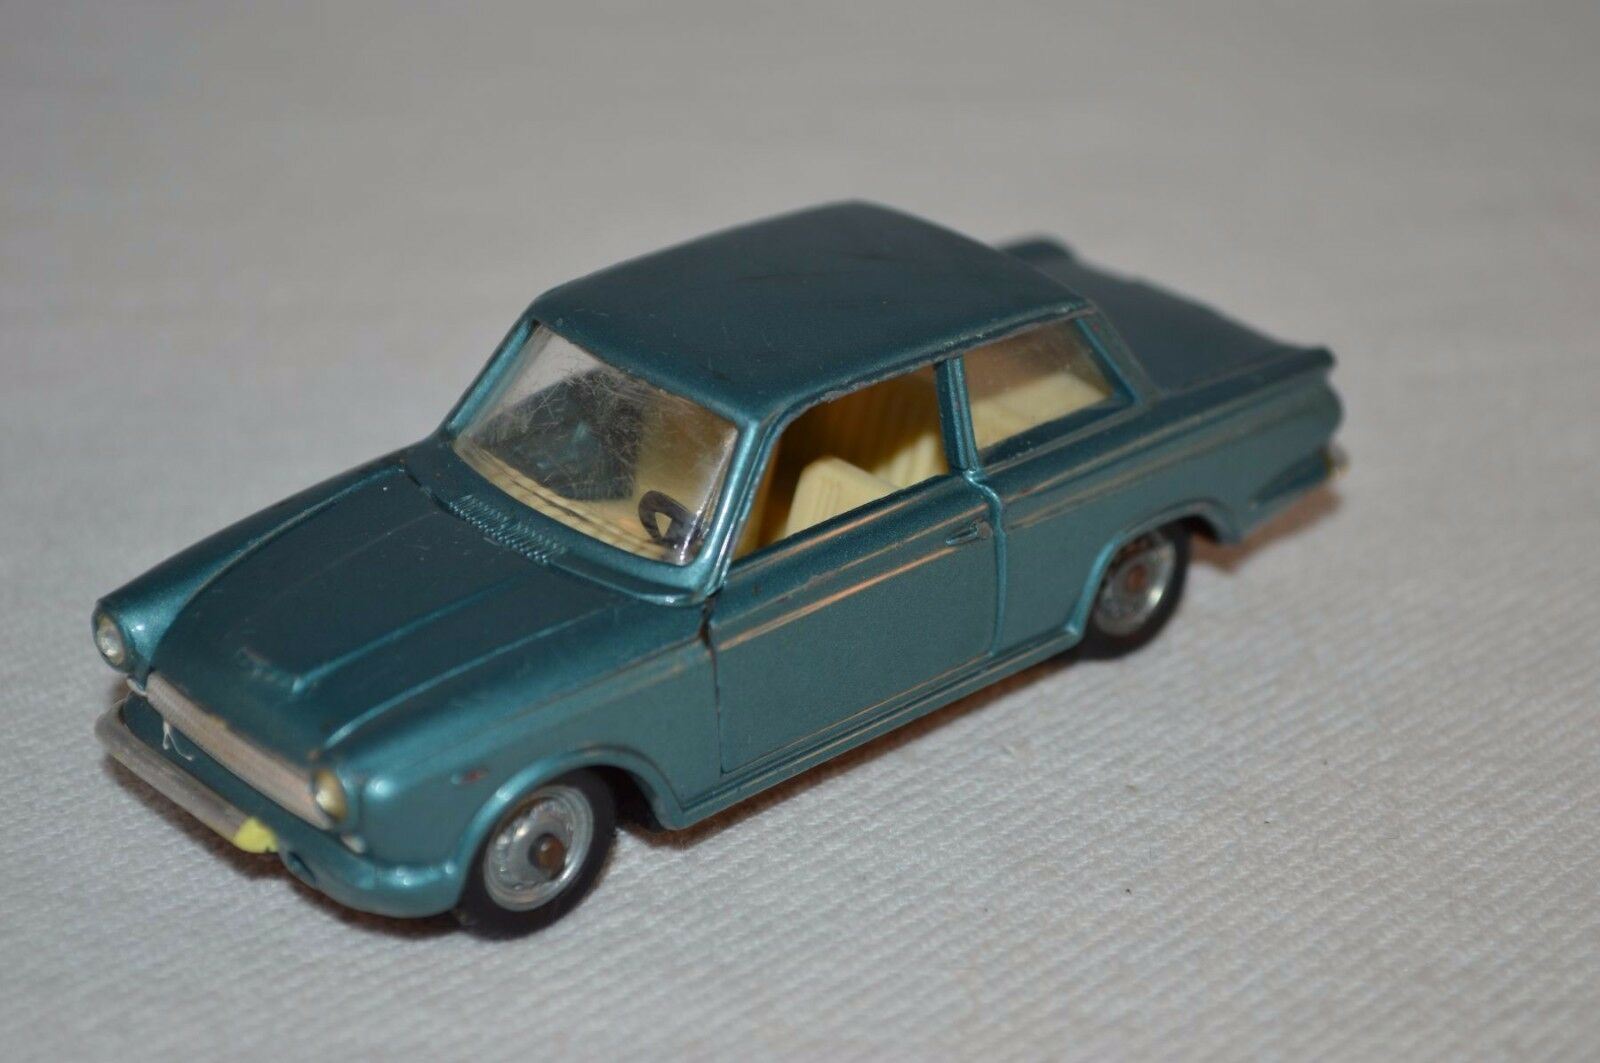 Politoys 507 Ford Consul Cortina 1 43 turquoise in excellent condition